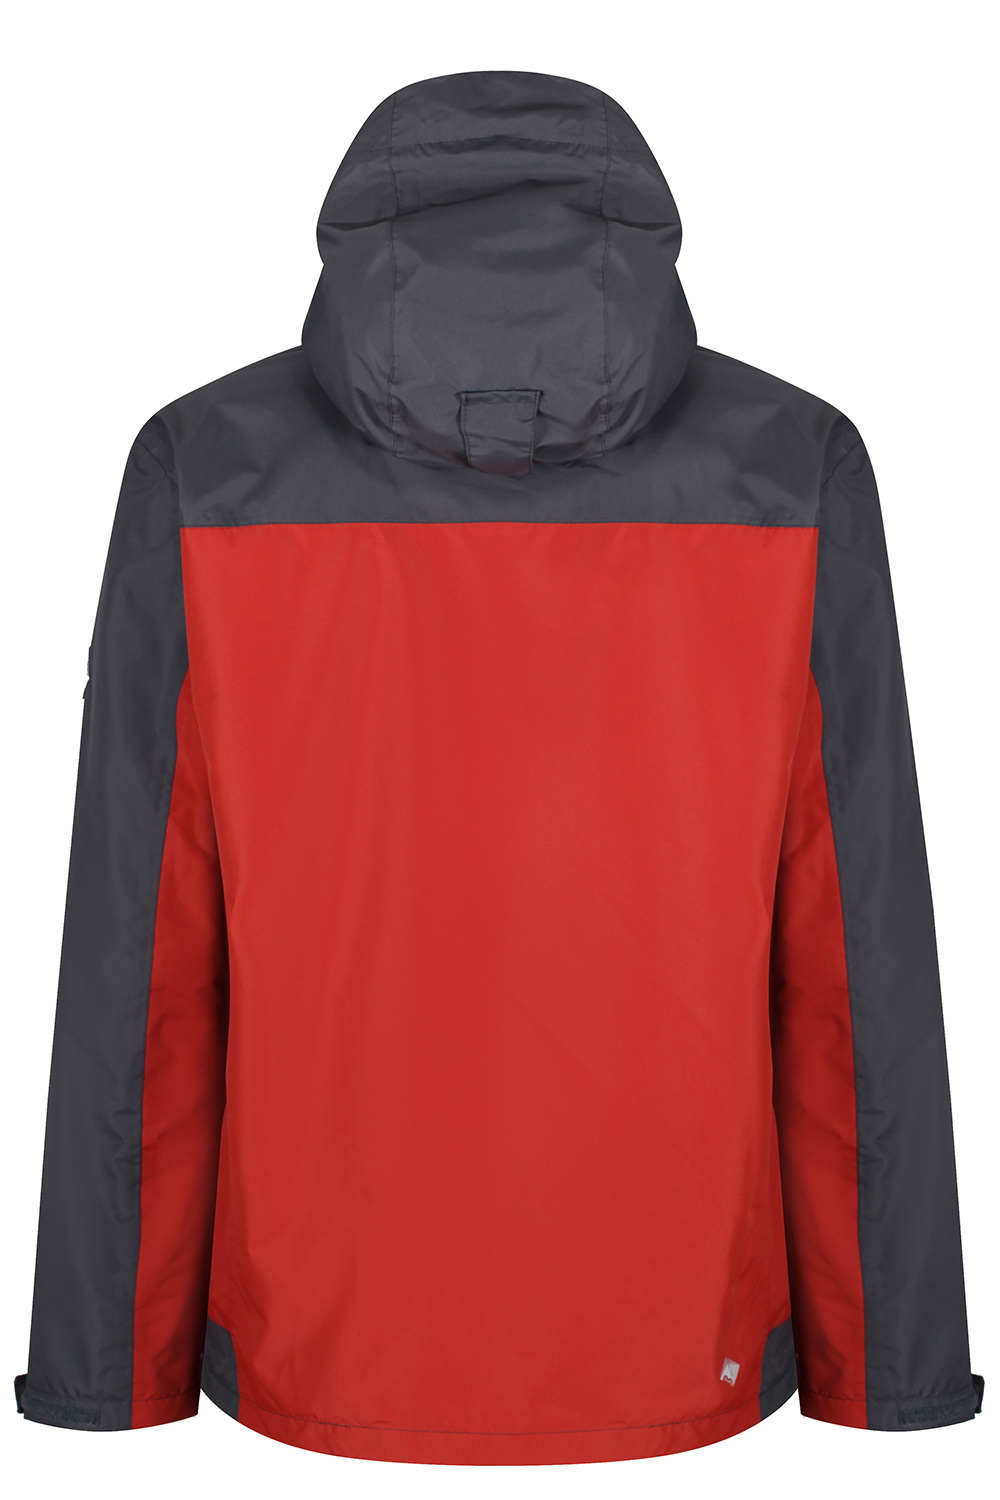 Regatta-Mens-Calderdale-II-Jacket-Waterproof-Breathable-Isotex-5000-Hooded-Coat thumbnail 20